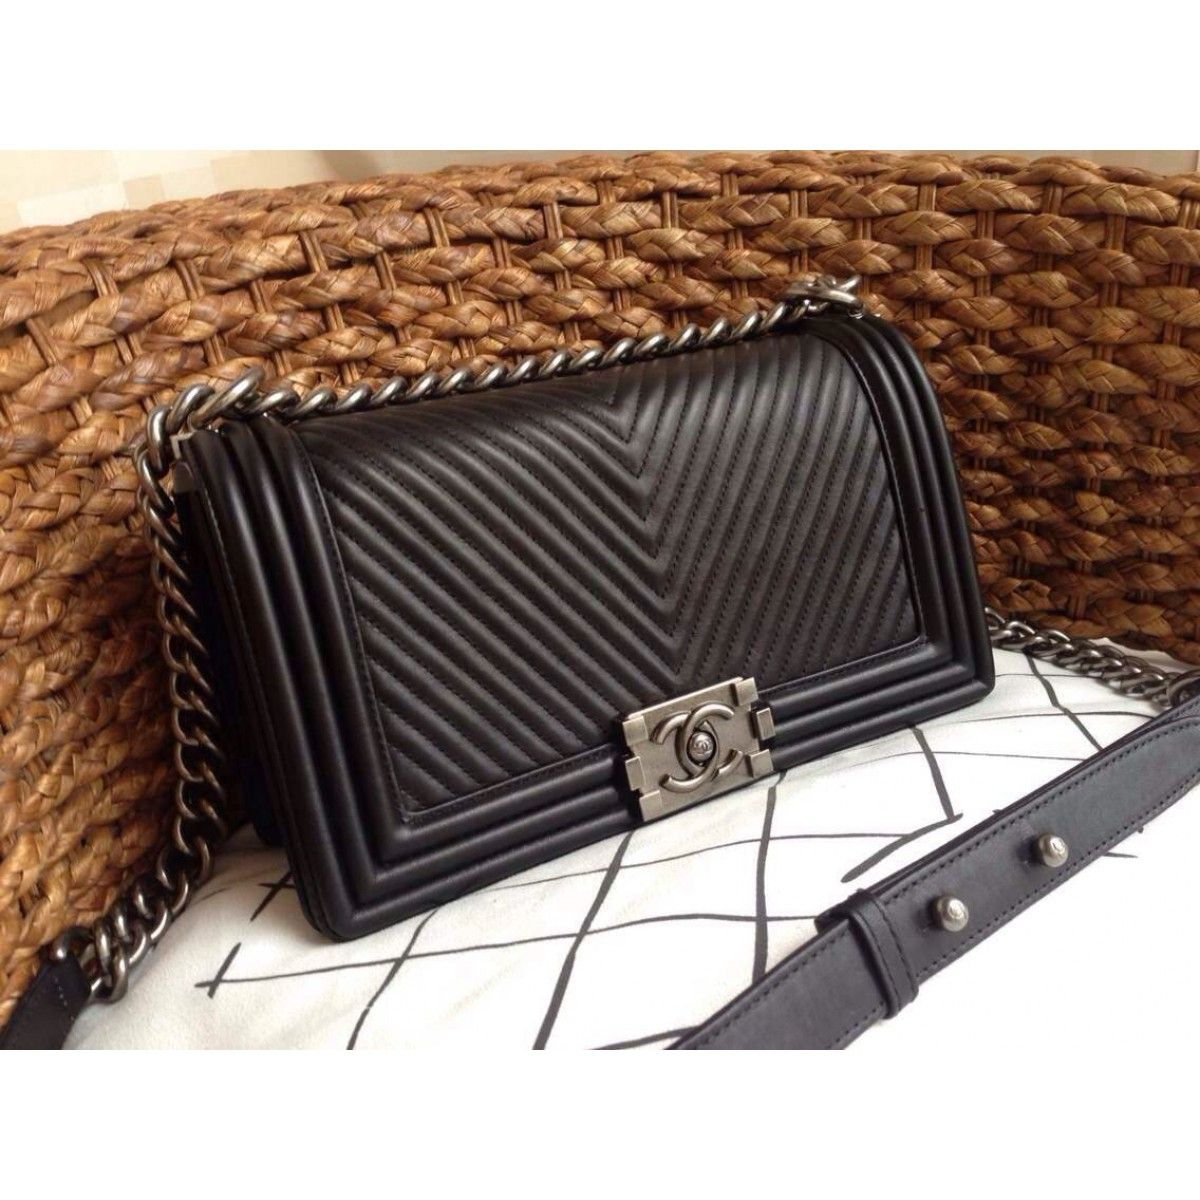 Chanel Micro Chevron Boy Bag - Black  cdfc8c8e5ca7b